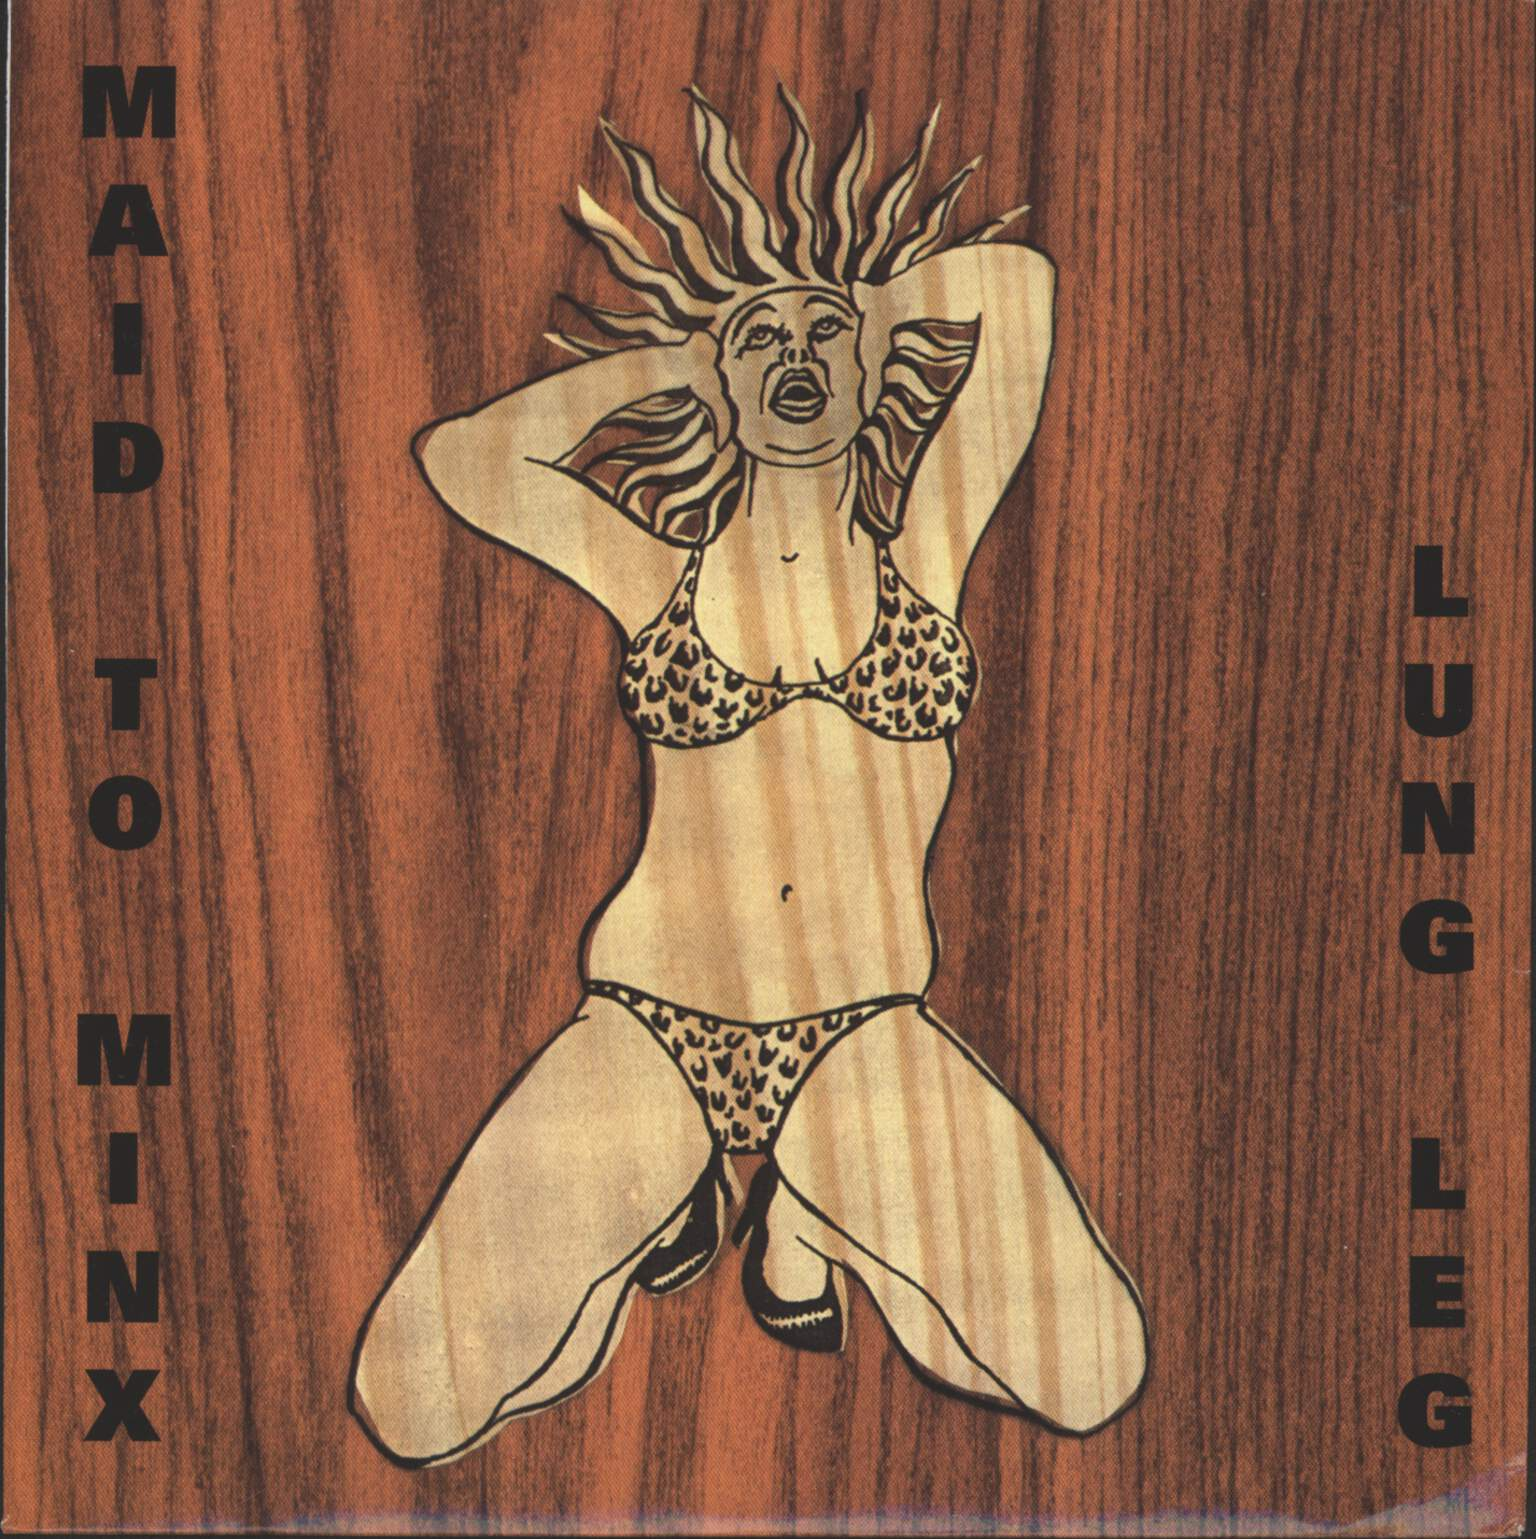 "Lung Leg: Maid To Minx, 7"" Single (Vinyl)"